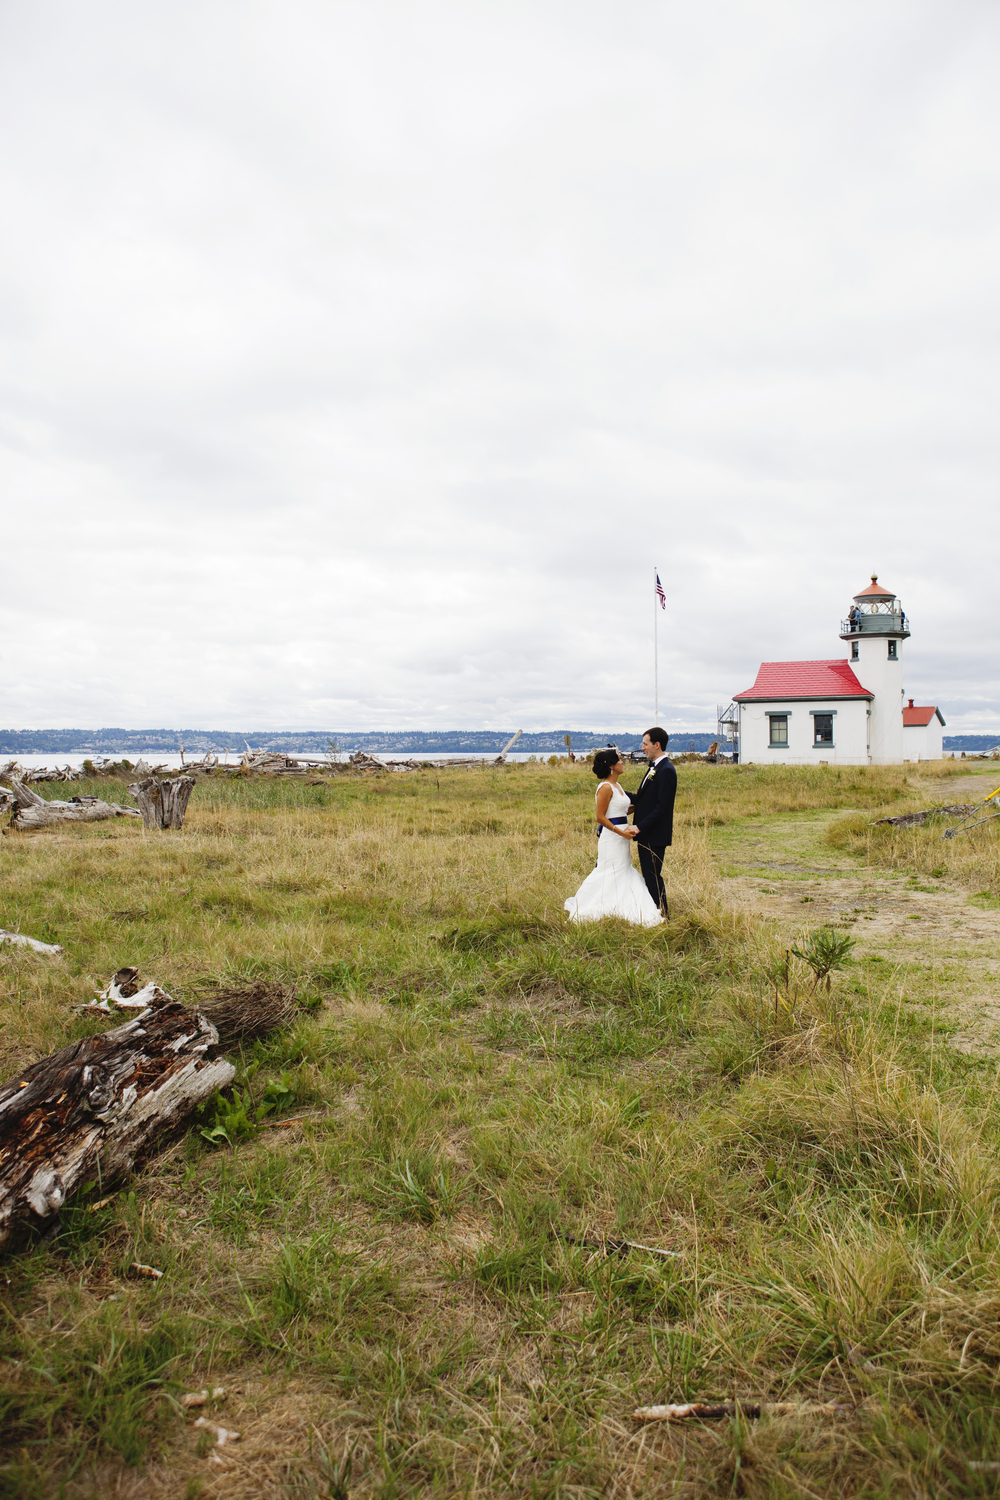 FirstLookLighthouseIMG_3693.jpg